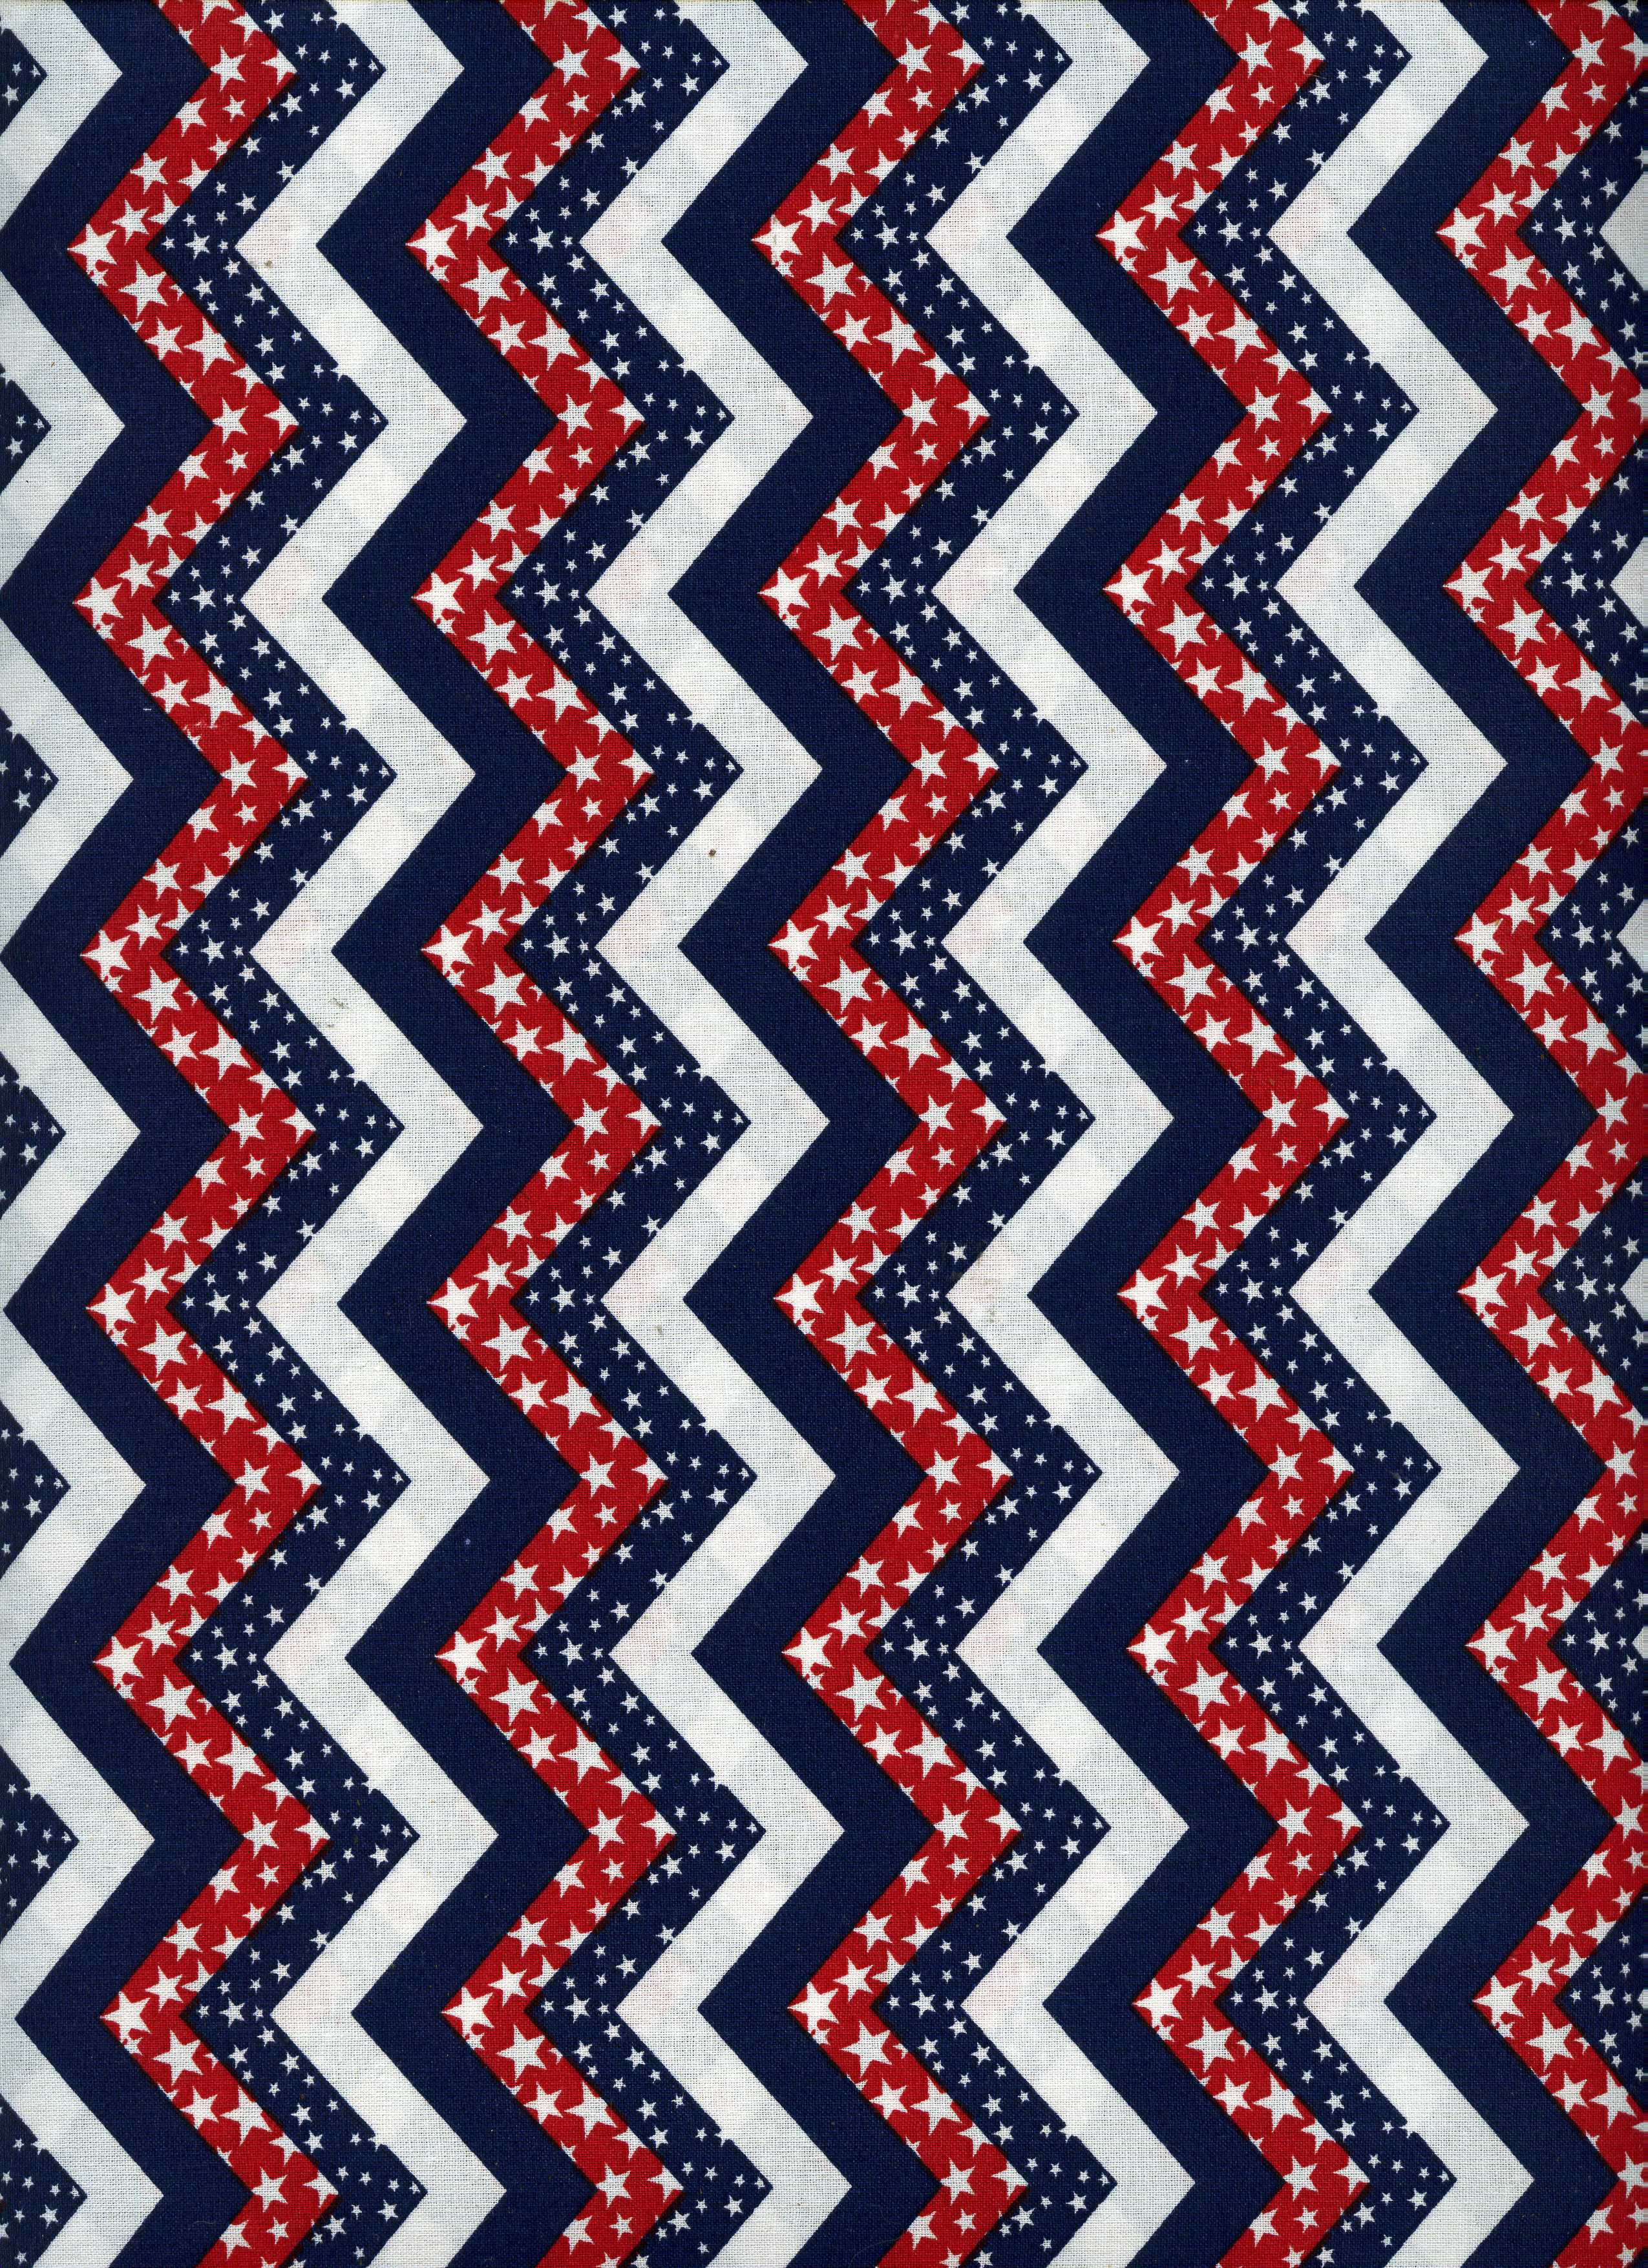 Red white and blue print